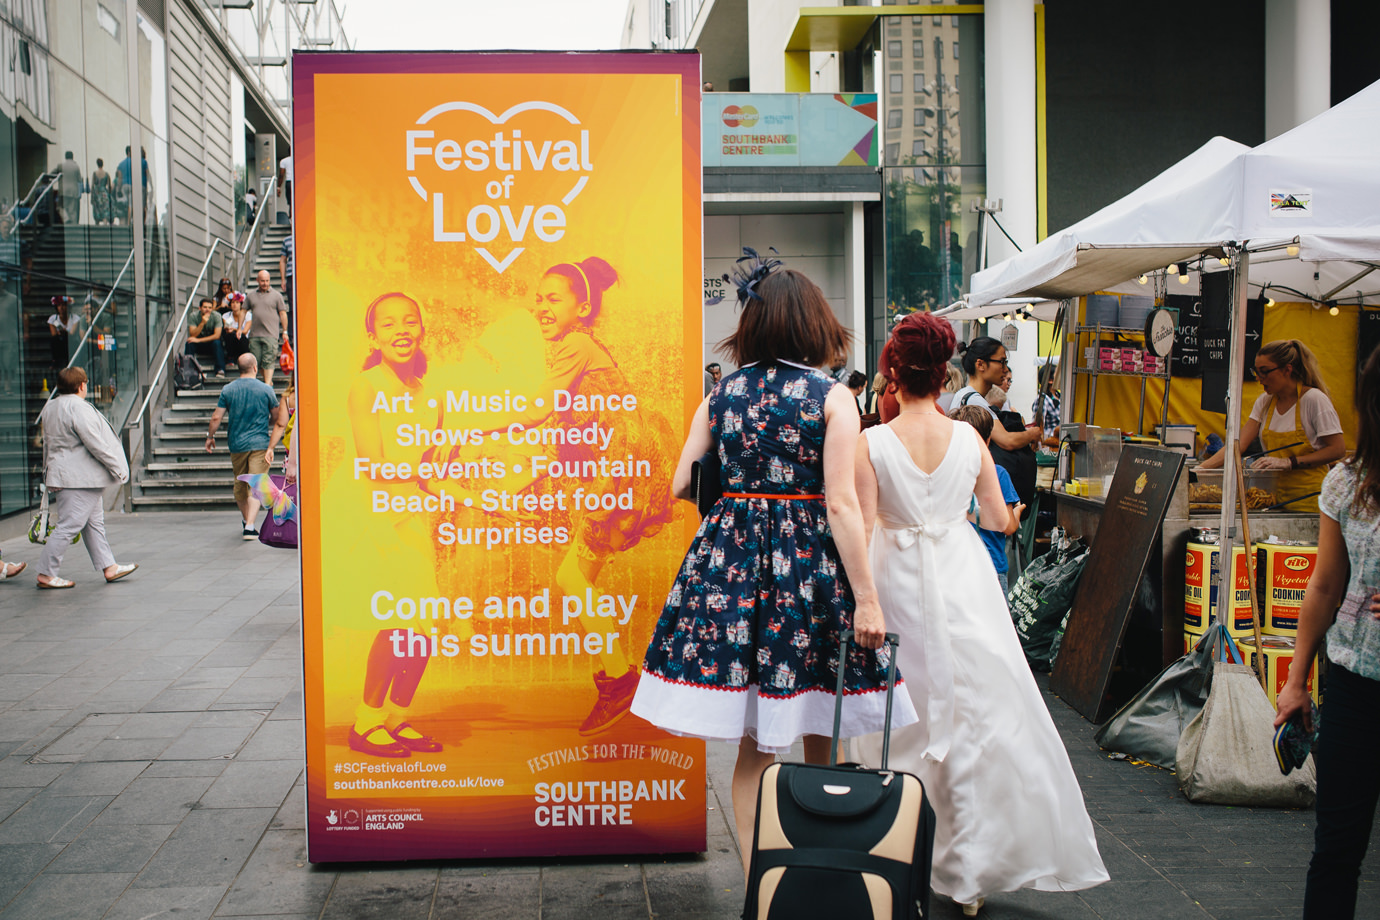 Festival of Love, Southbank, documentary wedding photography